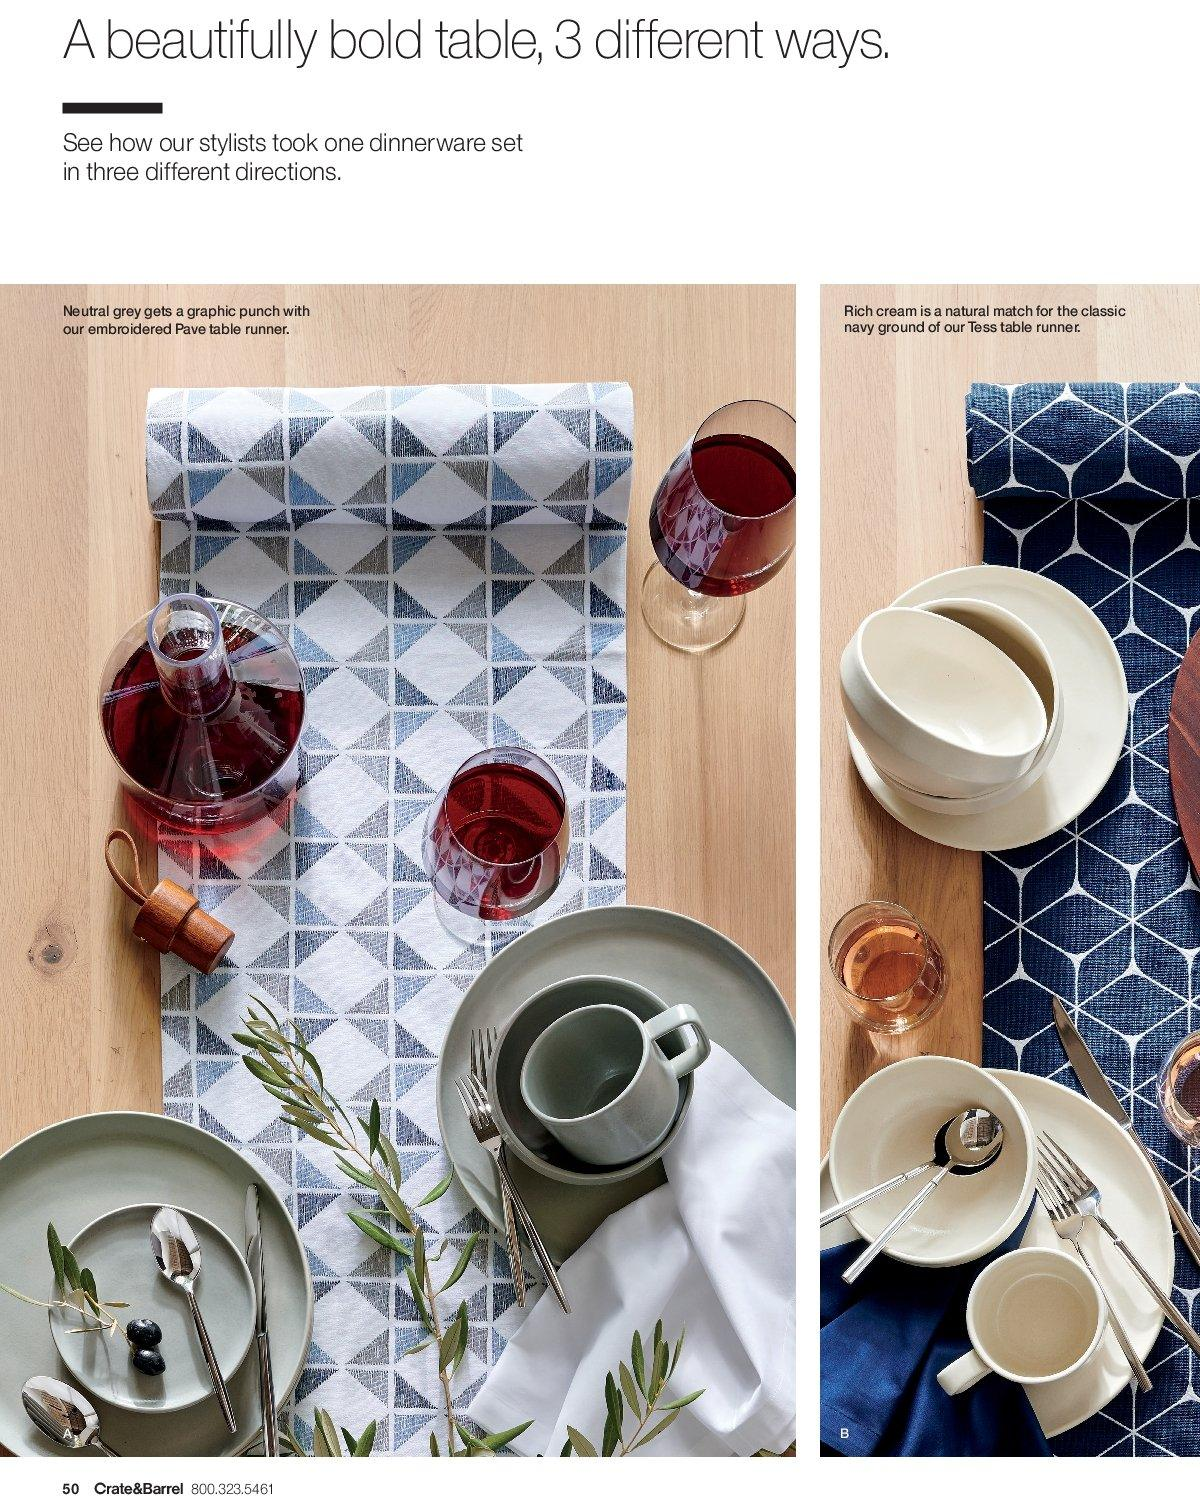 Crate & Barrel Flyer - 03.01.2019 - 03.31.2019 - Sales products - crate, dinnerware set, table, table runner, punch, dinnerware. Page 50.